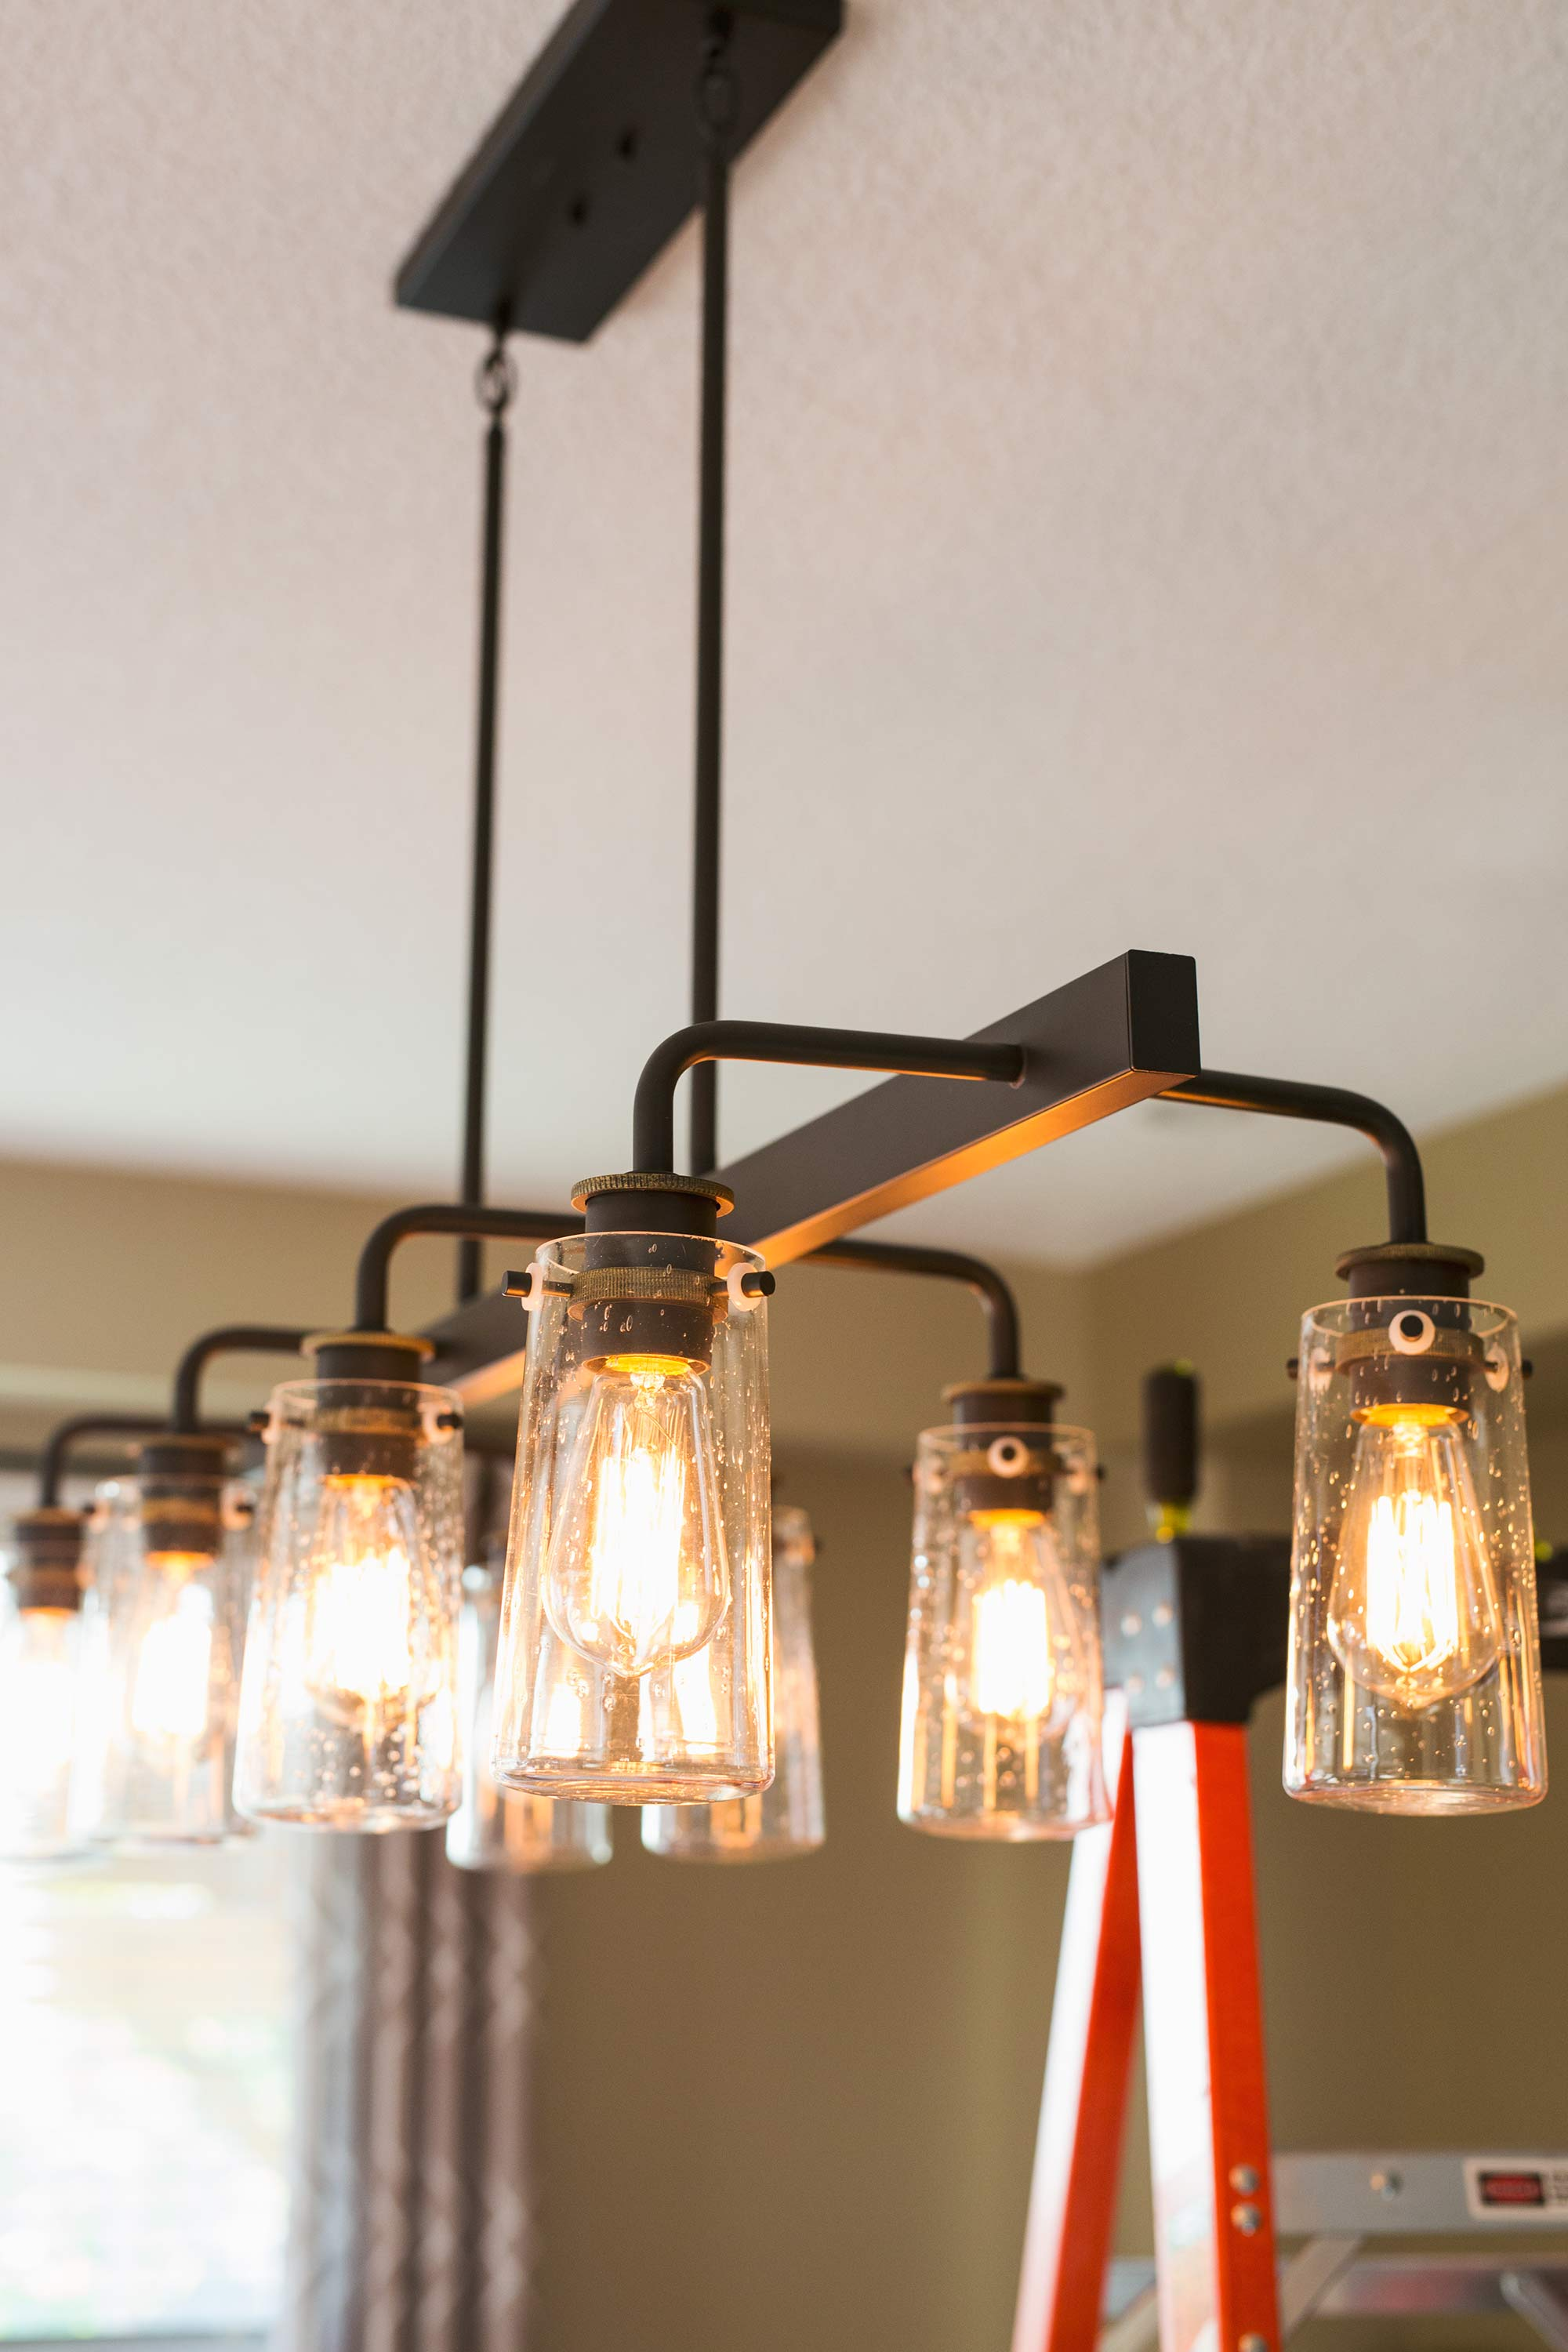 esa-kichler-wayfair-light-installed